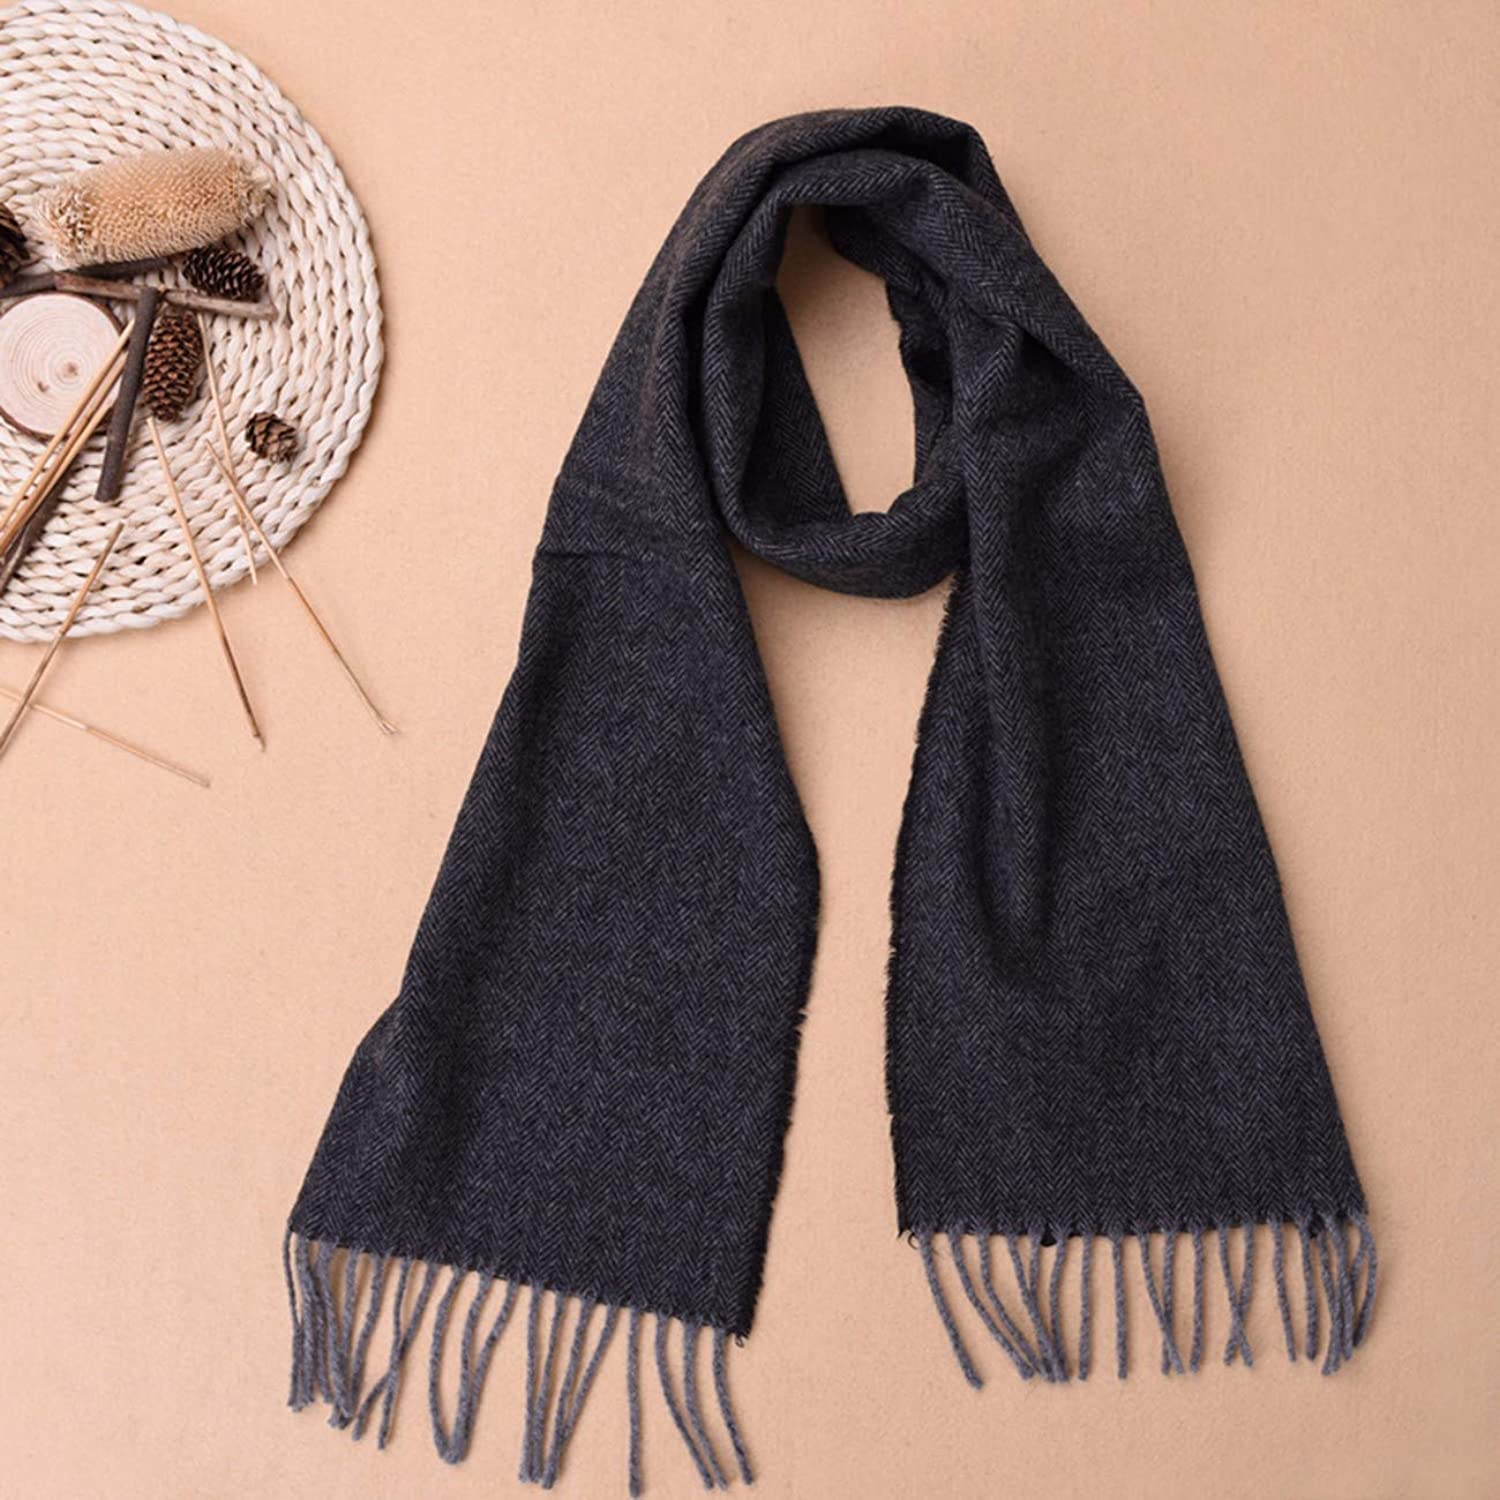 Cashmere Scarves, Women's Thickening, Warm Collar and Long Neck.